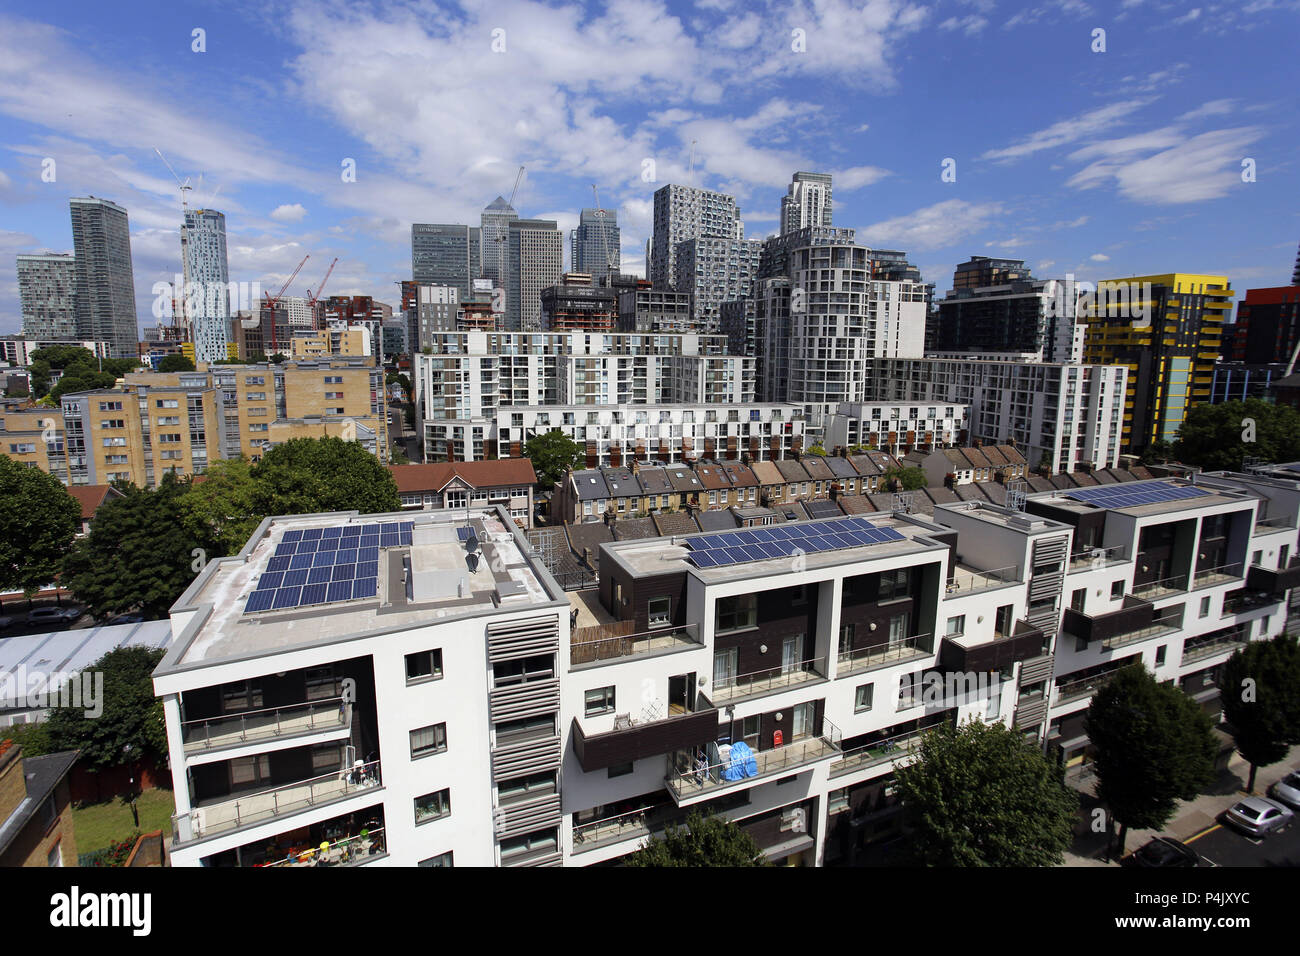 Residential Apartments with rooftop solar panels near Canary Wharf, Isle of Dogs, London, - Stock Image